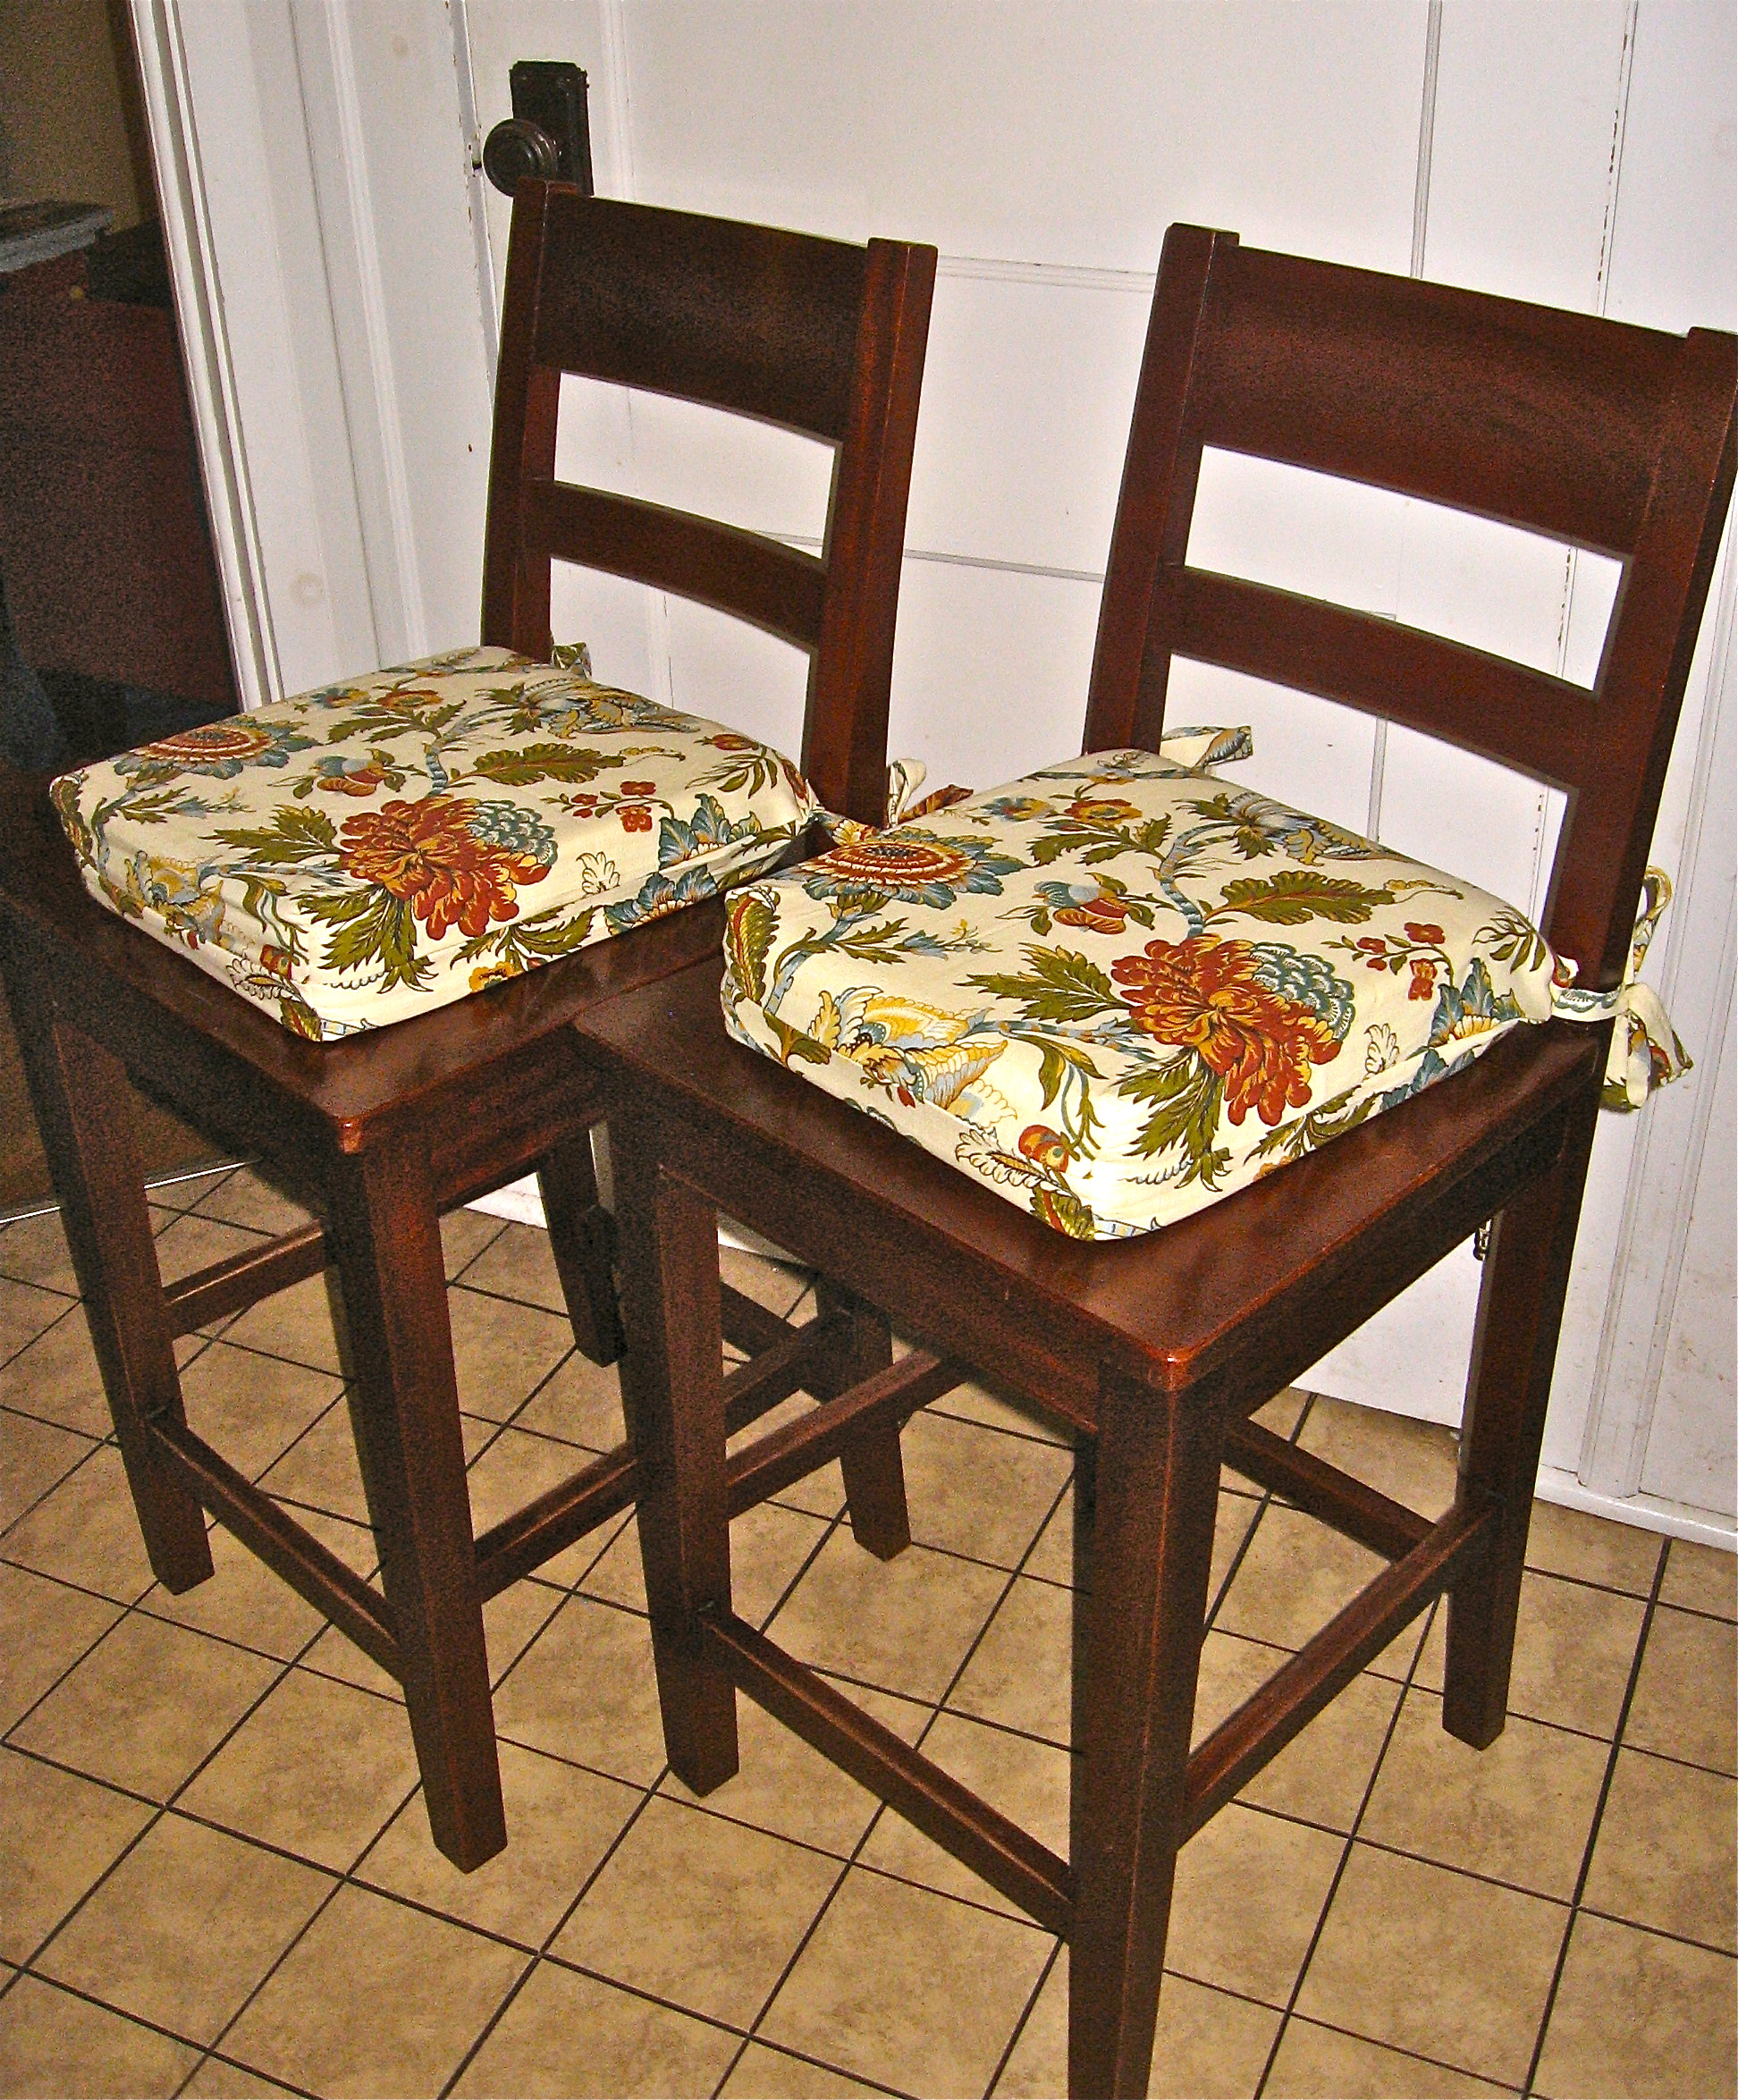 Chair Cushions For Kitchen Chairs Kitchen Chairs Tie On Cushions For Kitchen Chairs